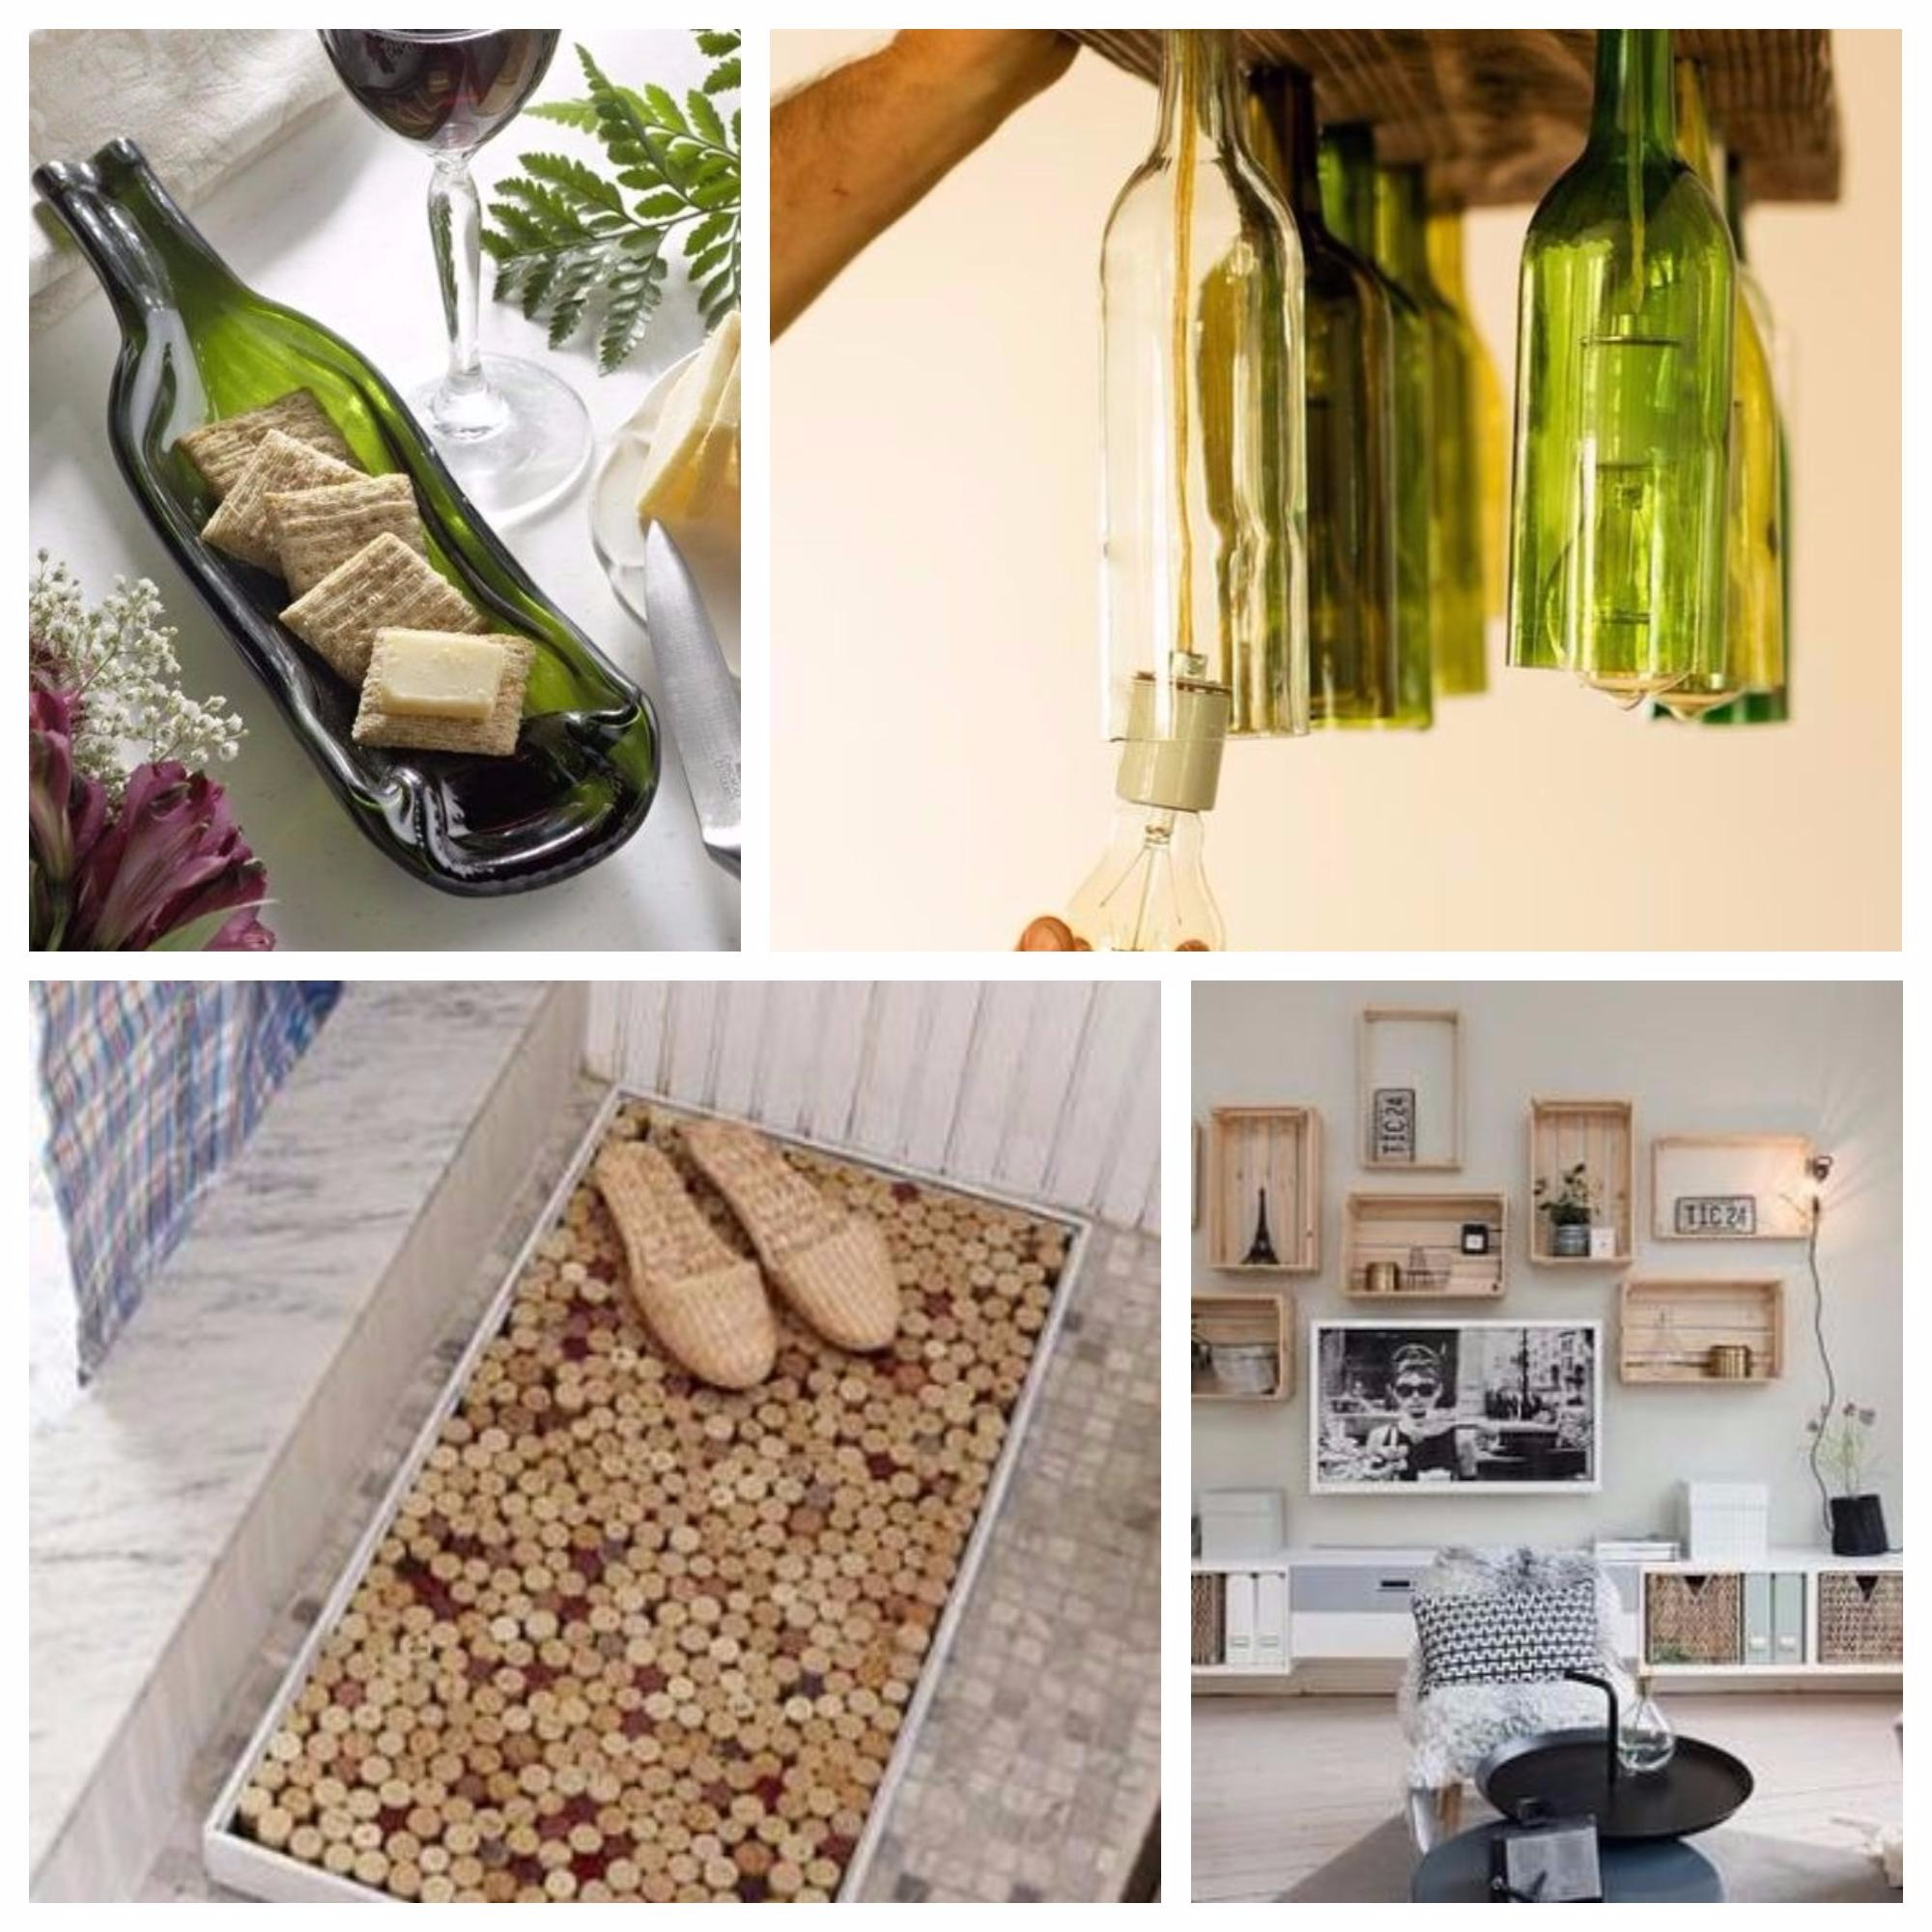 De vino vivanco for Ideas creativas para decorar el hogar